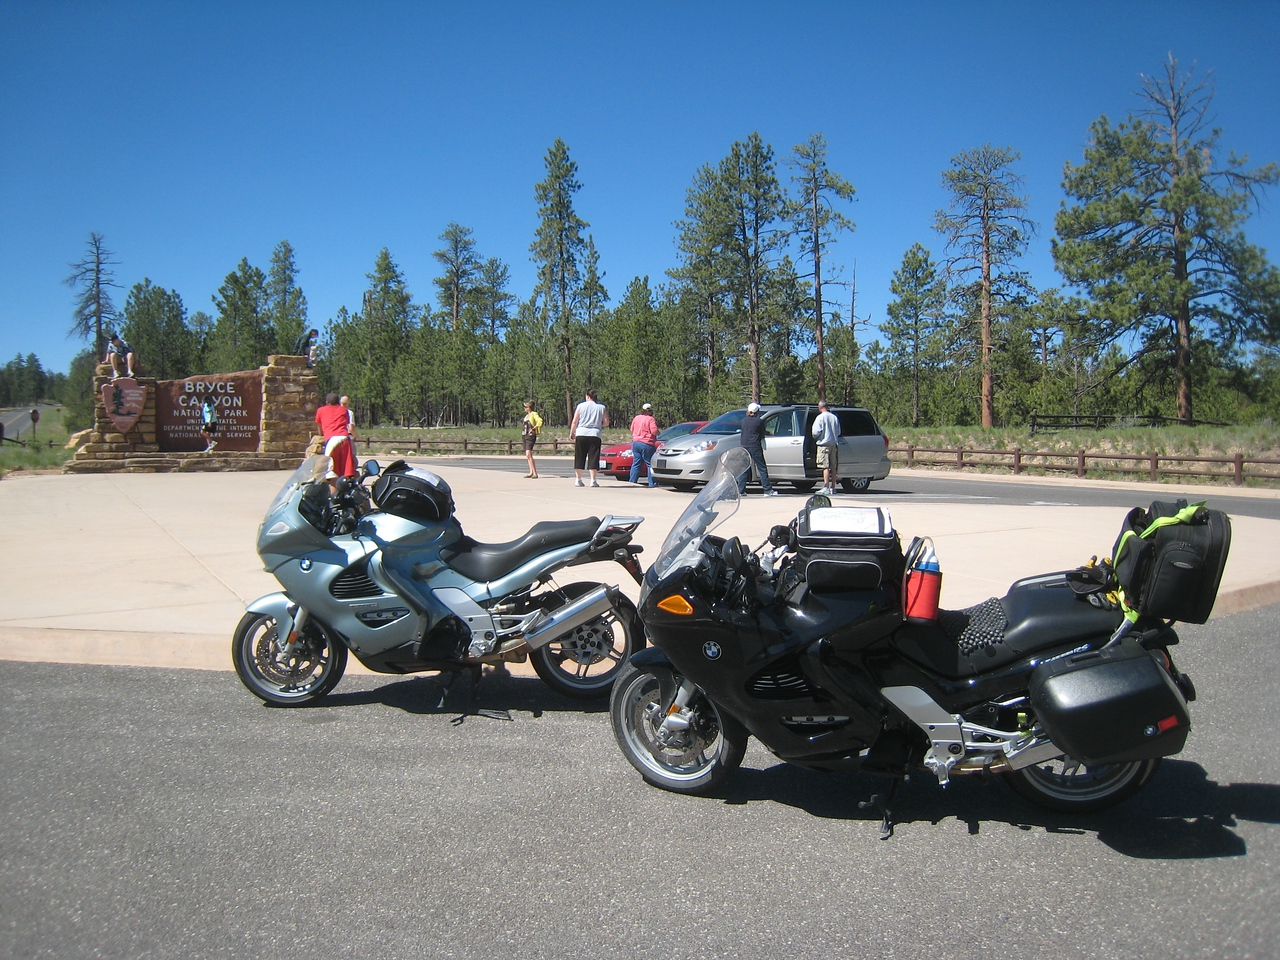 But sometimes you gotta stop.  Like getting a picture of your bike in front of a landmark of sorts.  Here the bikes are poised at the entrance sign for Bryce Canyon National Park.